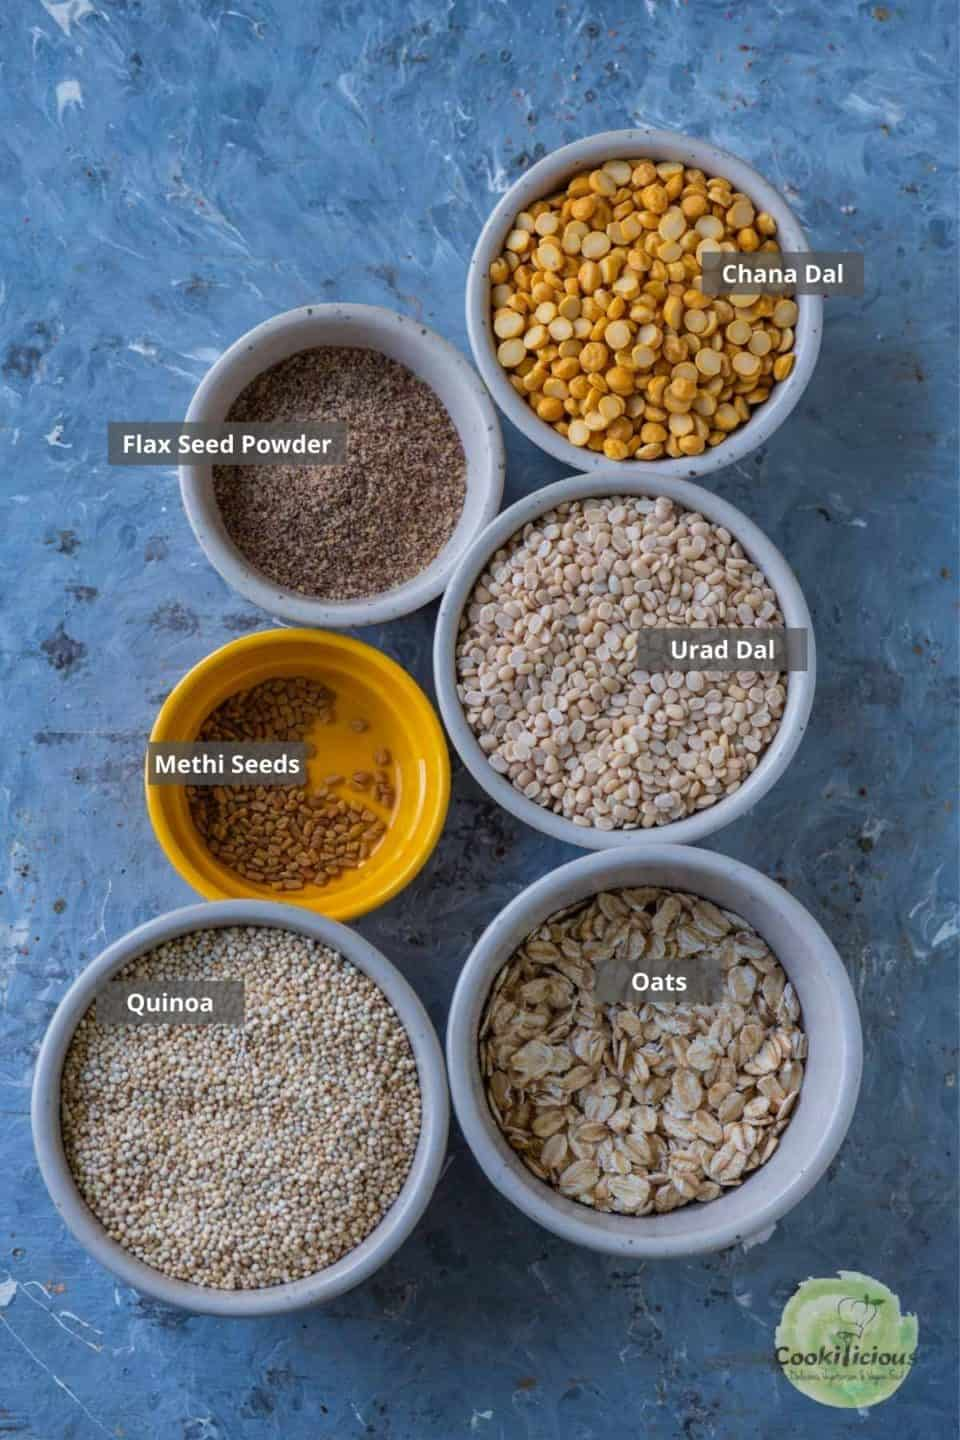 all the ingredients needed to make Quinoa Dosa placed on a table with labels on them